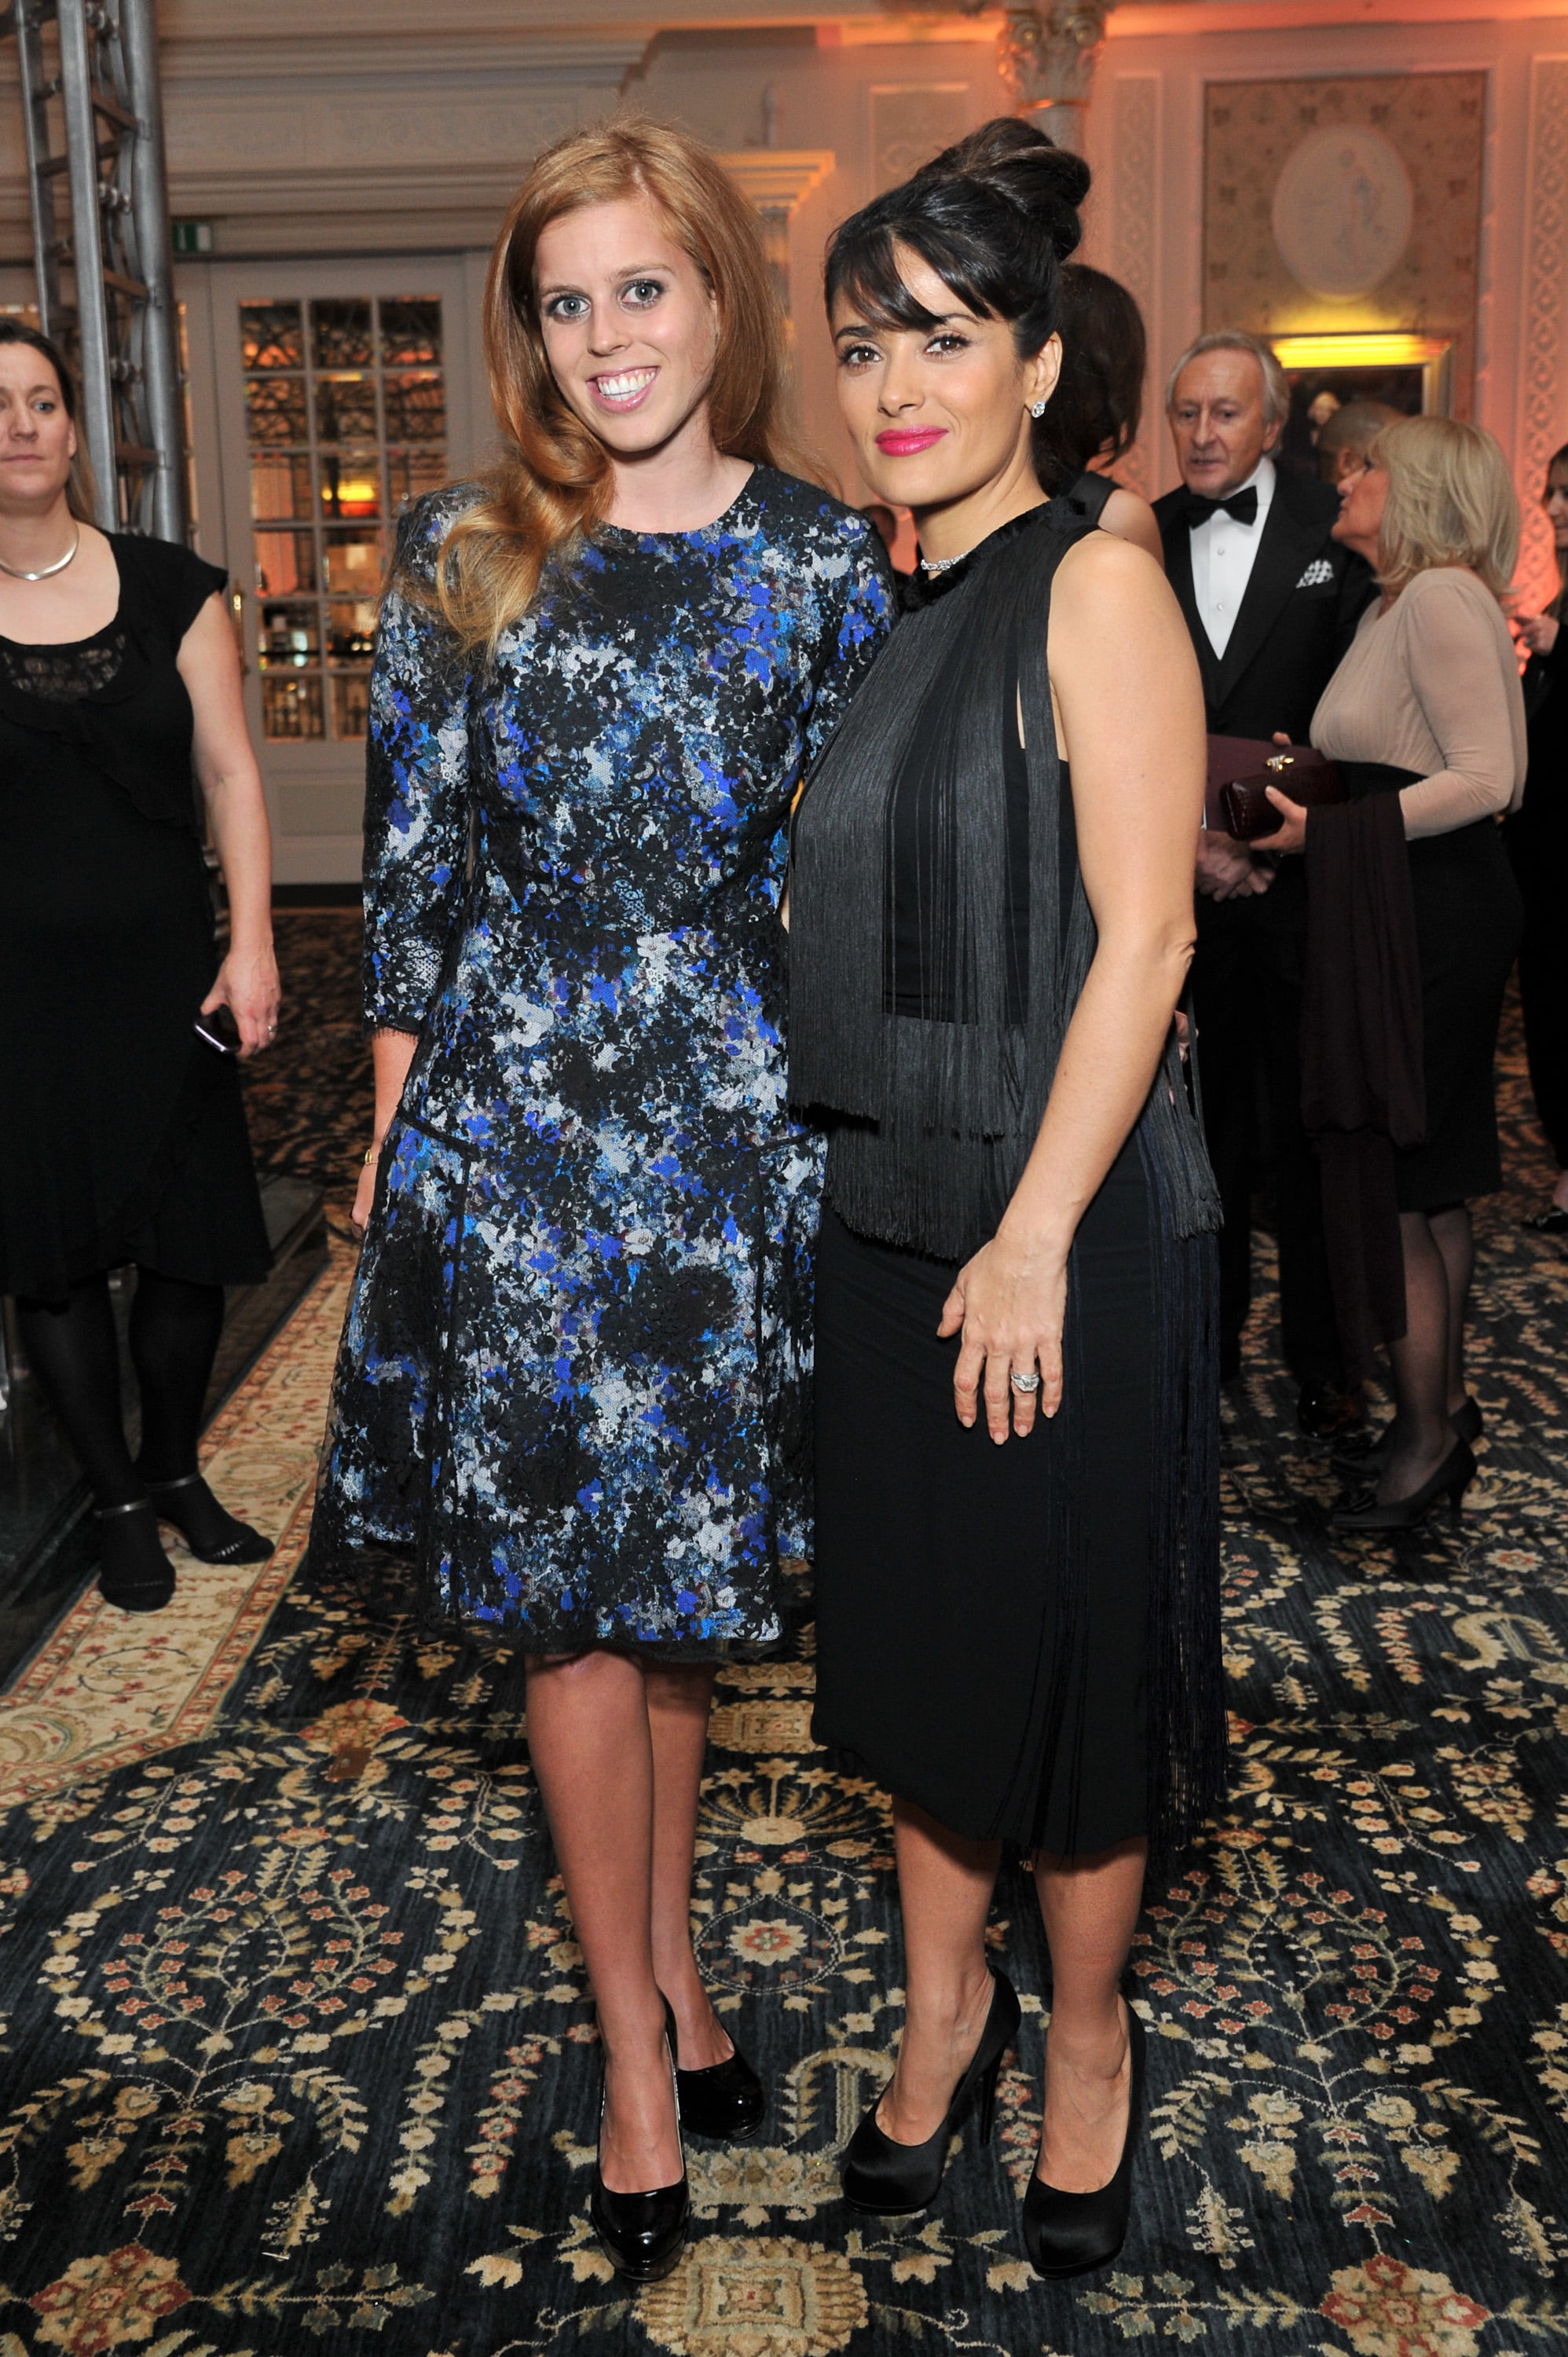 Princess Beatrice and Salma Hayek met each other in November 2012 at the British Fashion Awards in London.